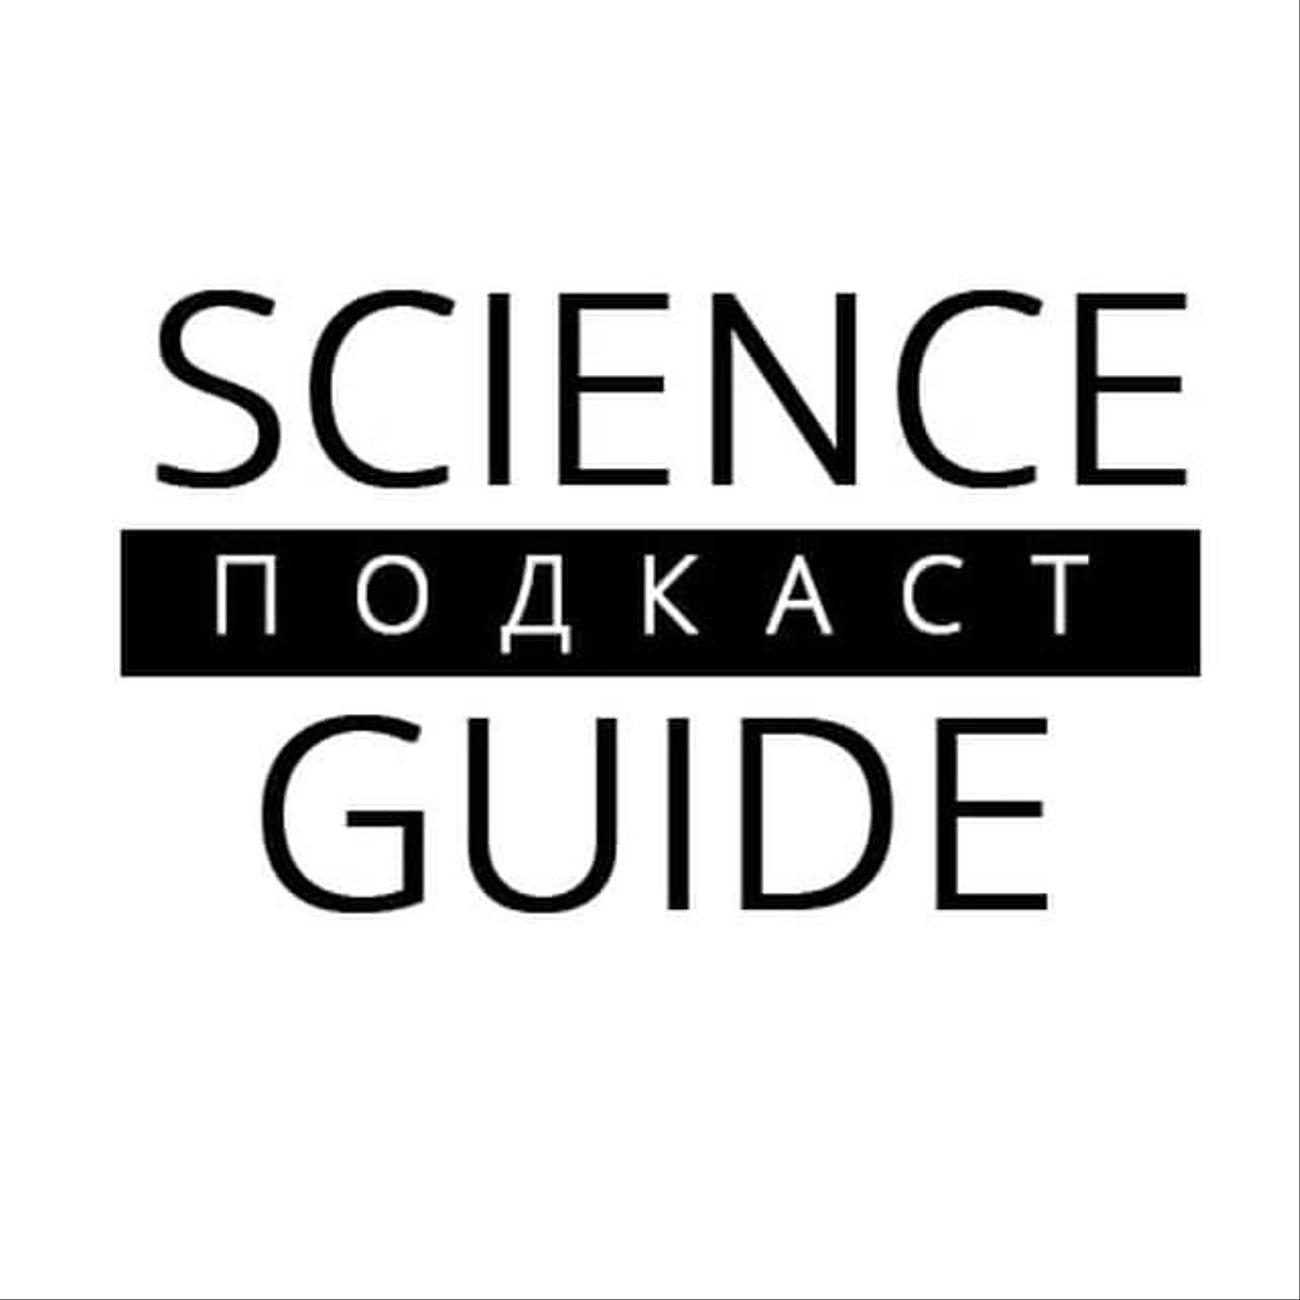 Science Guide Podcast